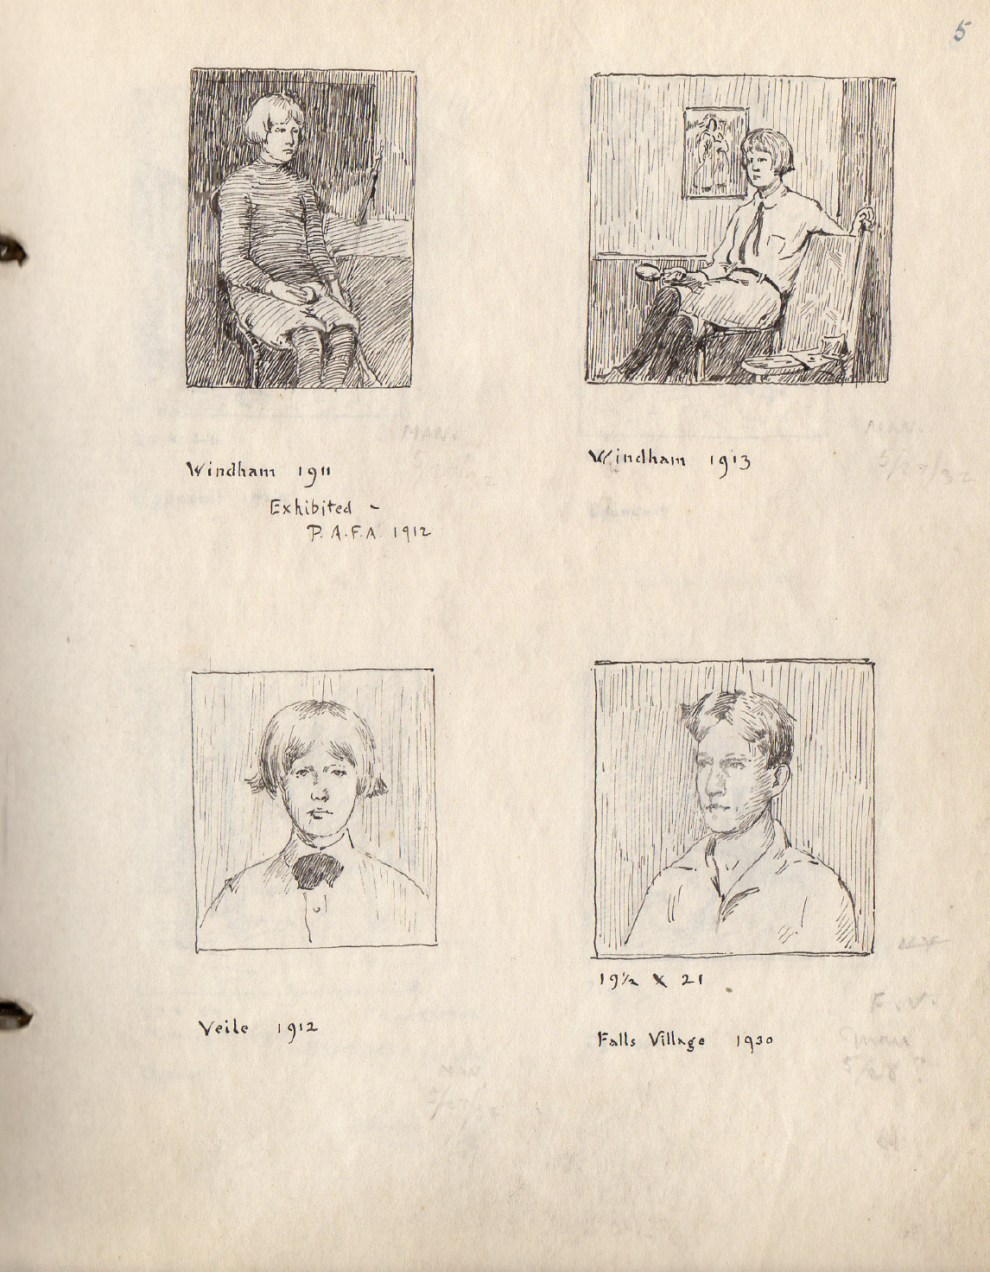 """Archive of Works by Emil Carlsen Compiled by Dines Carlsen"", 24 pages, hand-drawn sketches and notes probably by Dines, provided by Linda Hay, c1960"